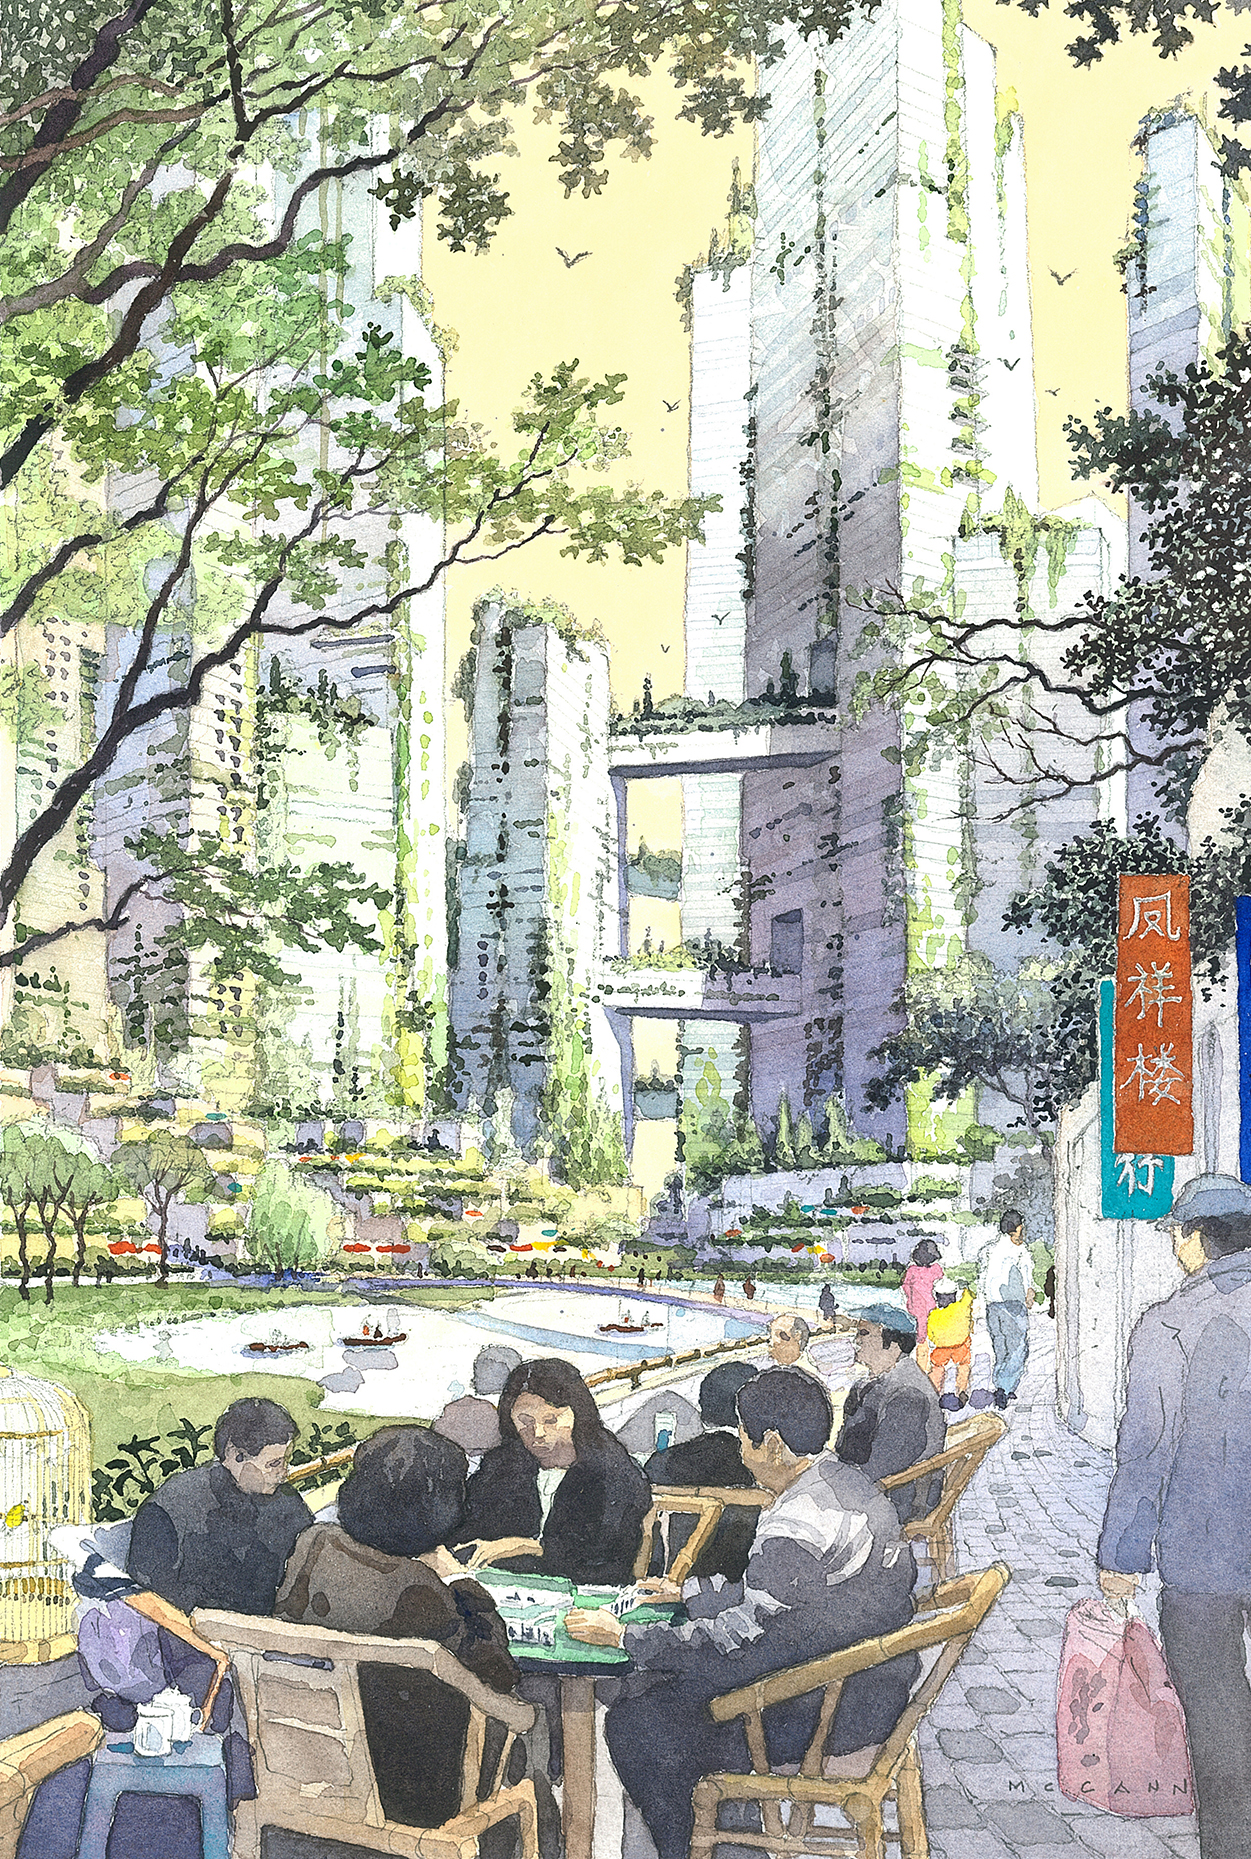 Tianfu Ecological City streetscape sketch 3